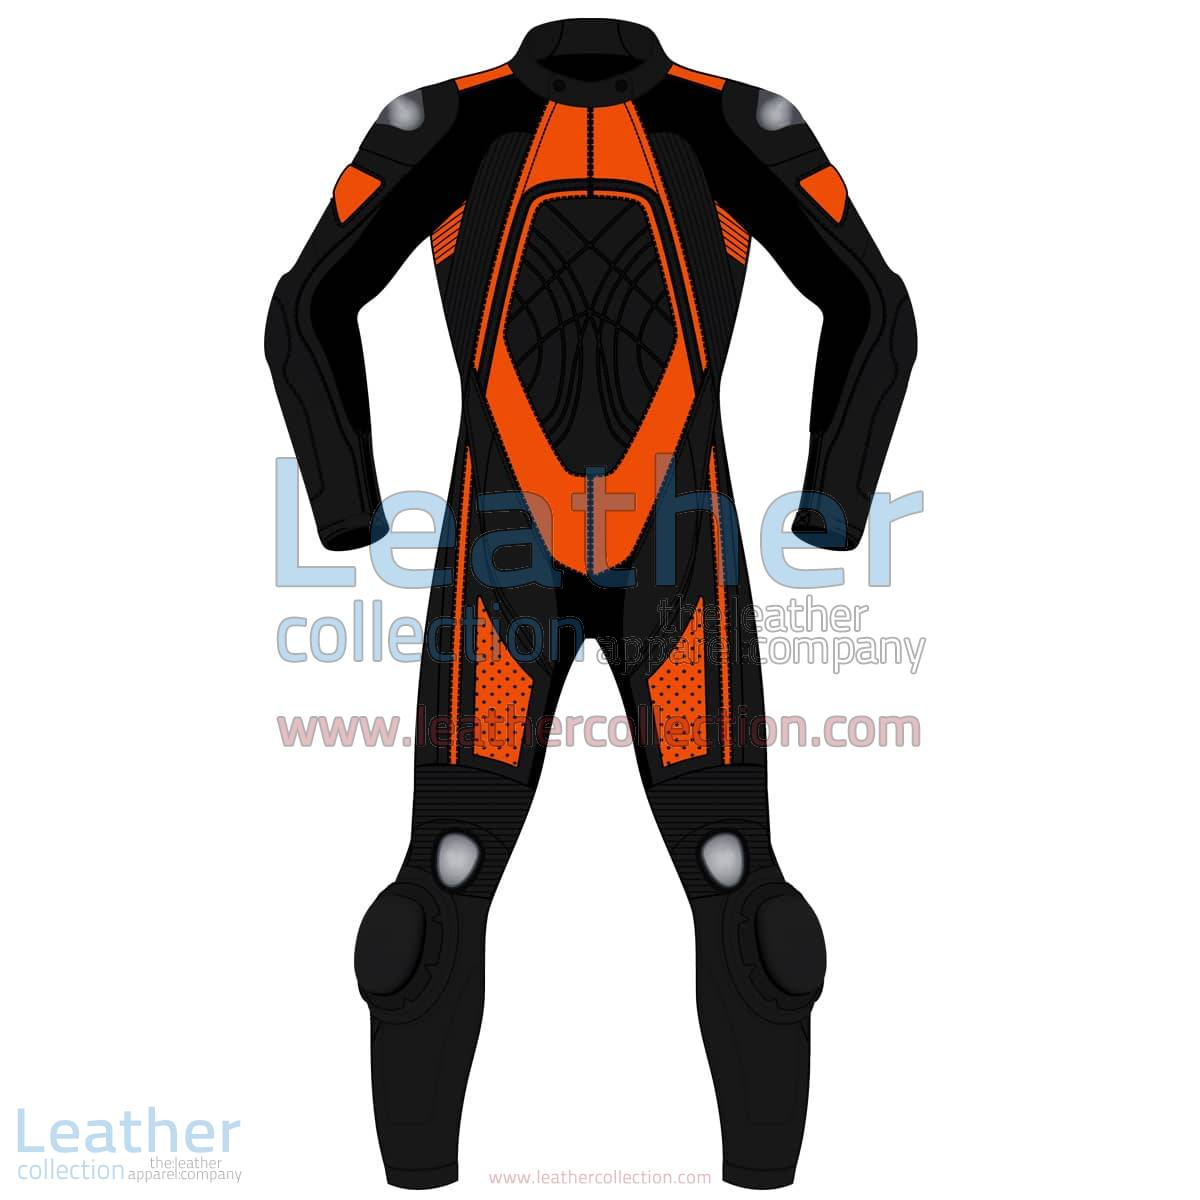 Bi Color One-Piece Motorbike Leather Suit For Men | One-Piece motorcycle Leather Suit,Bi Color One-Piece motorcycle Leather Suit For Men